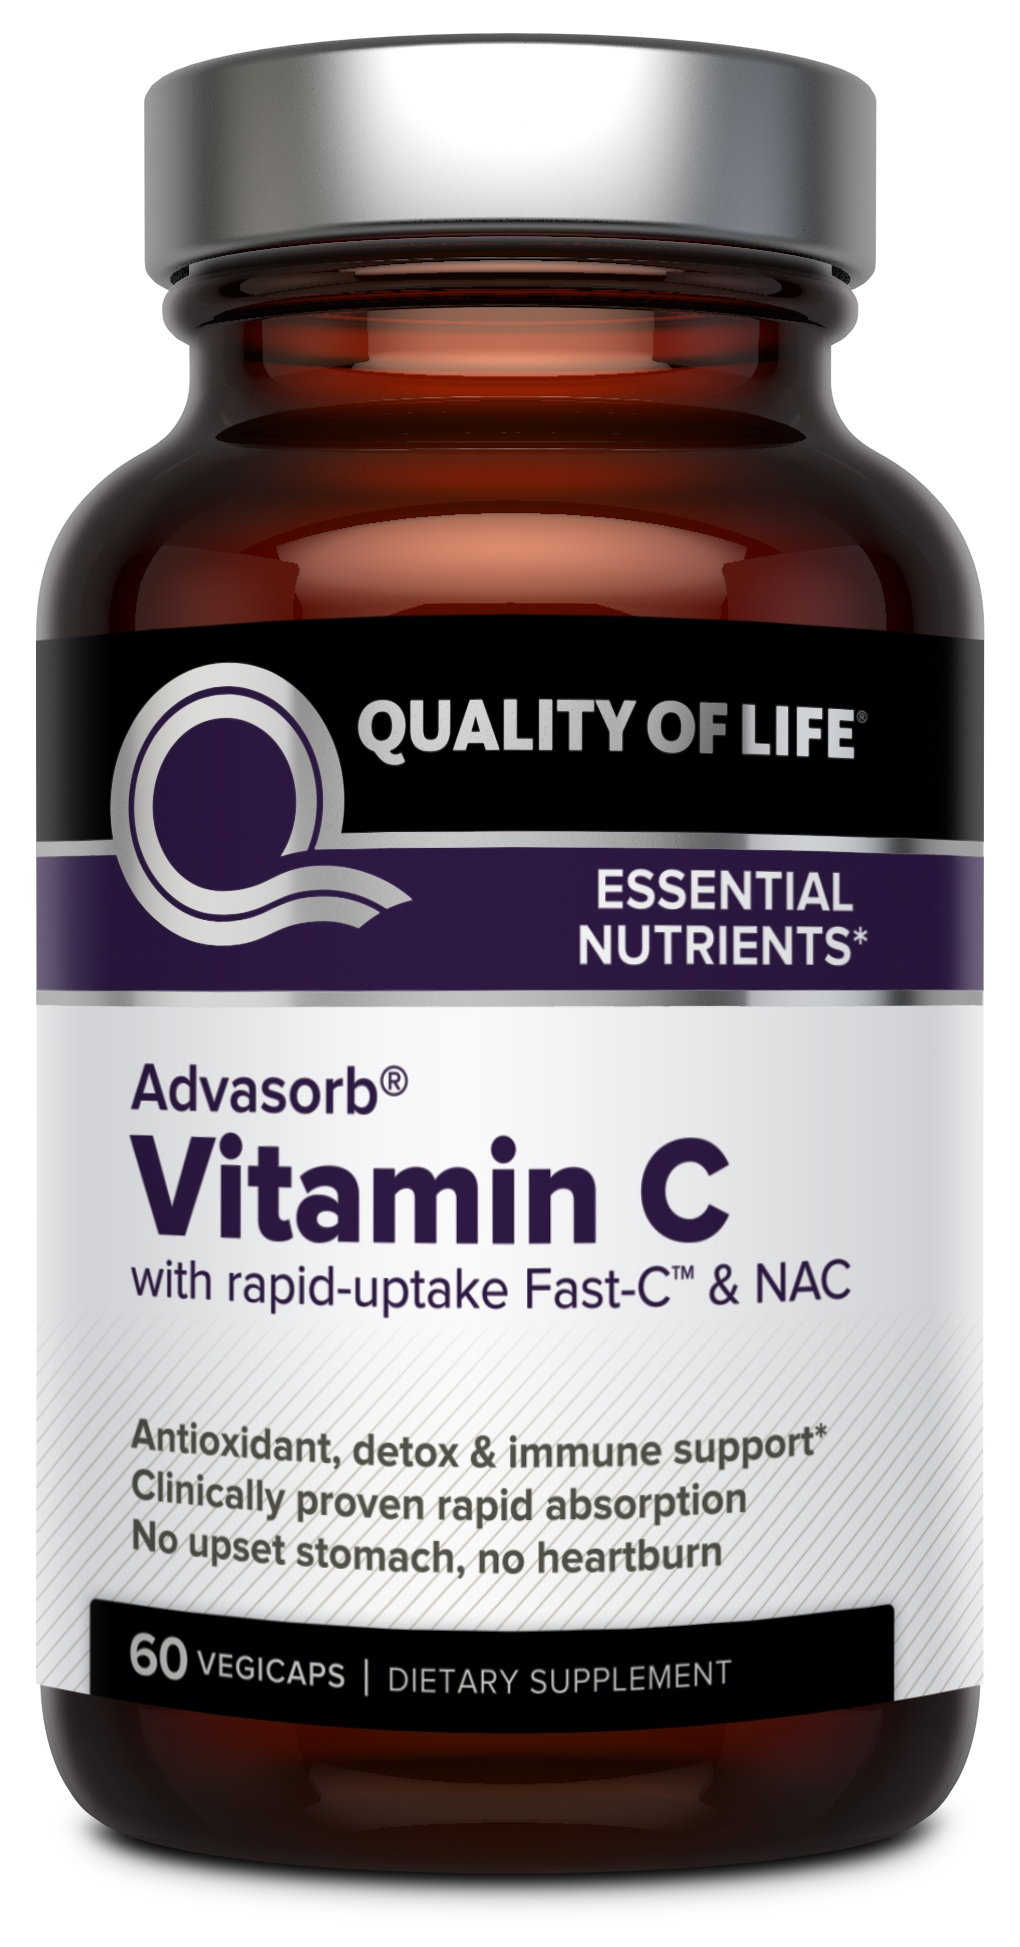 Advasorb Vitamin C 60 Vegicaps by Quality of Life Labs